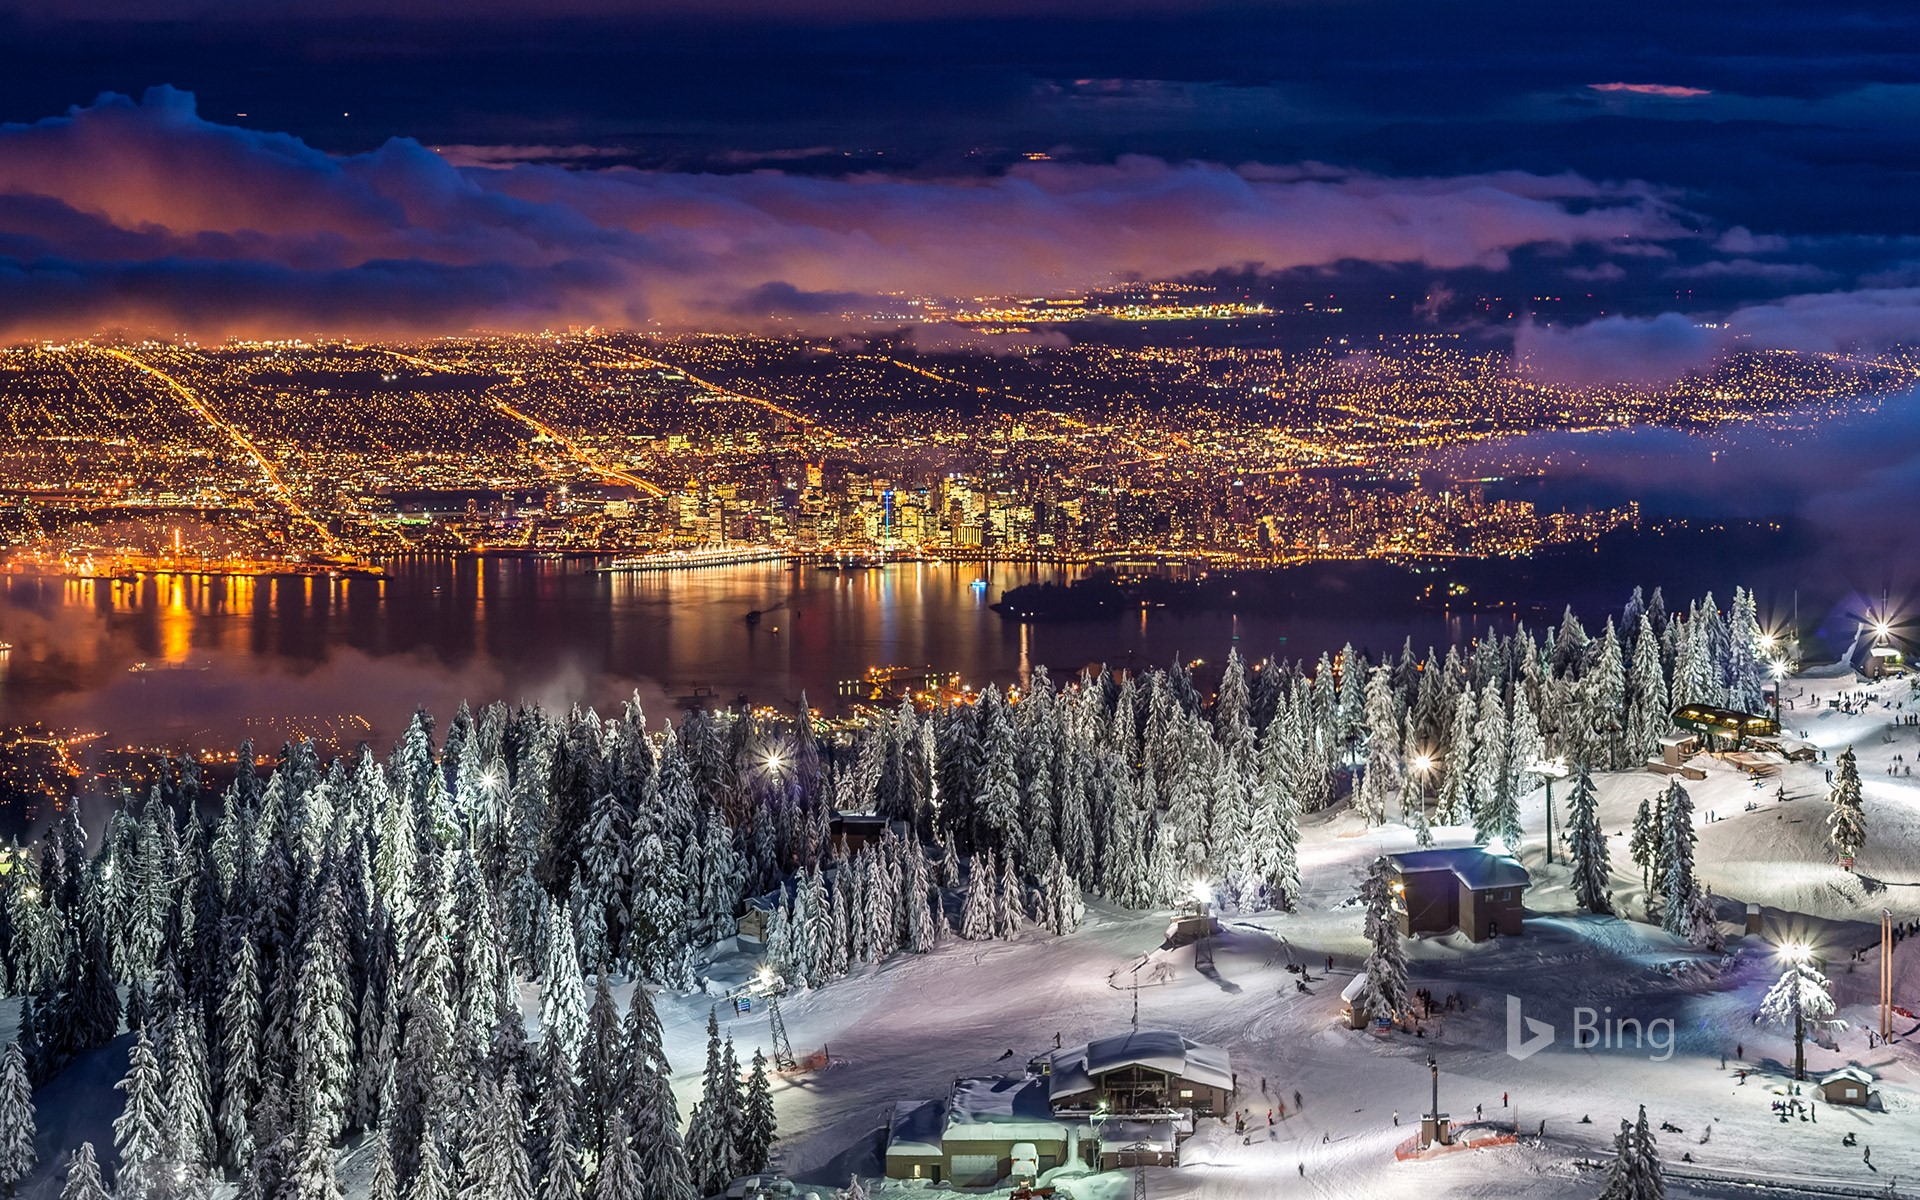 City lights from the snowy peak of Grouse Mountain at twilight, Vancouver, BC, Canada